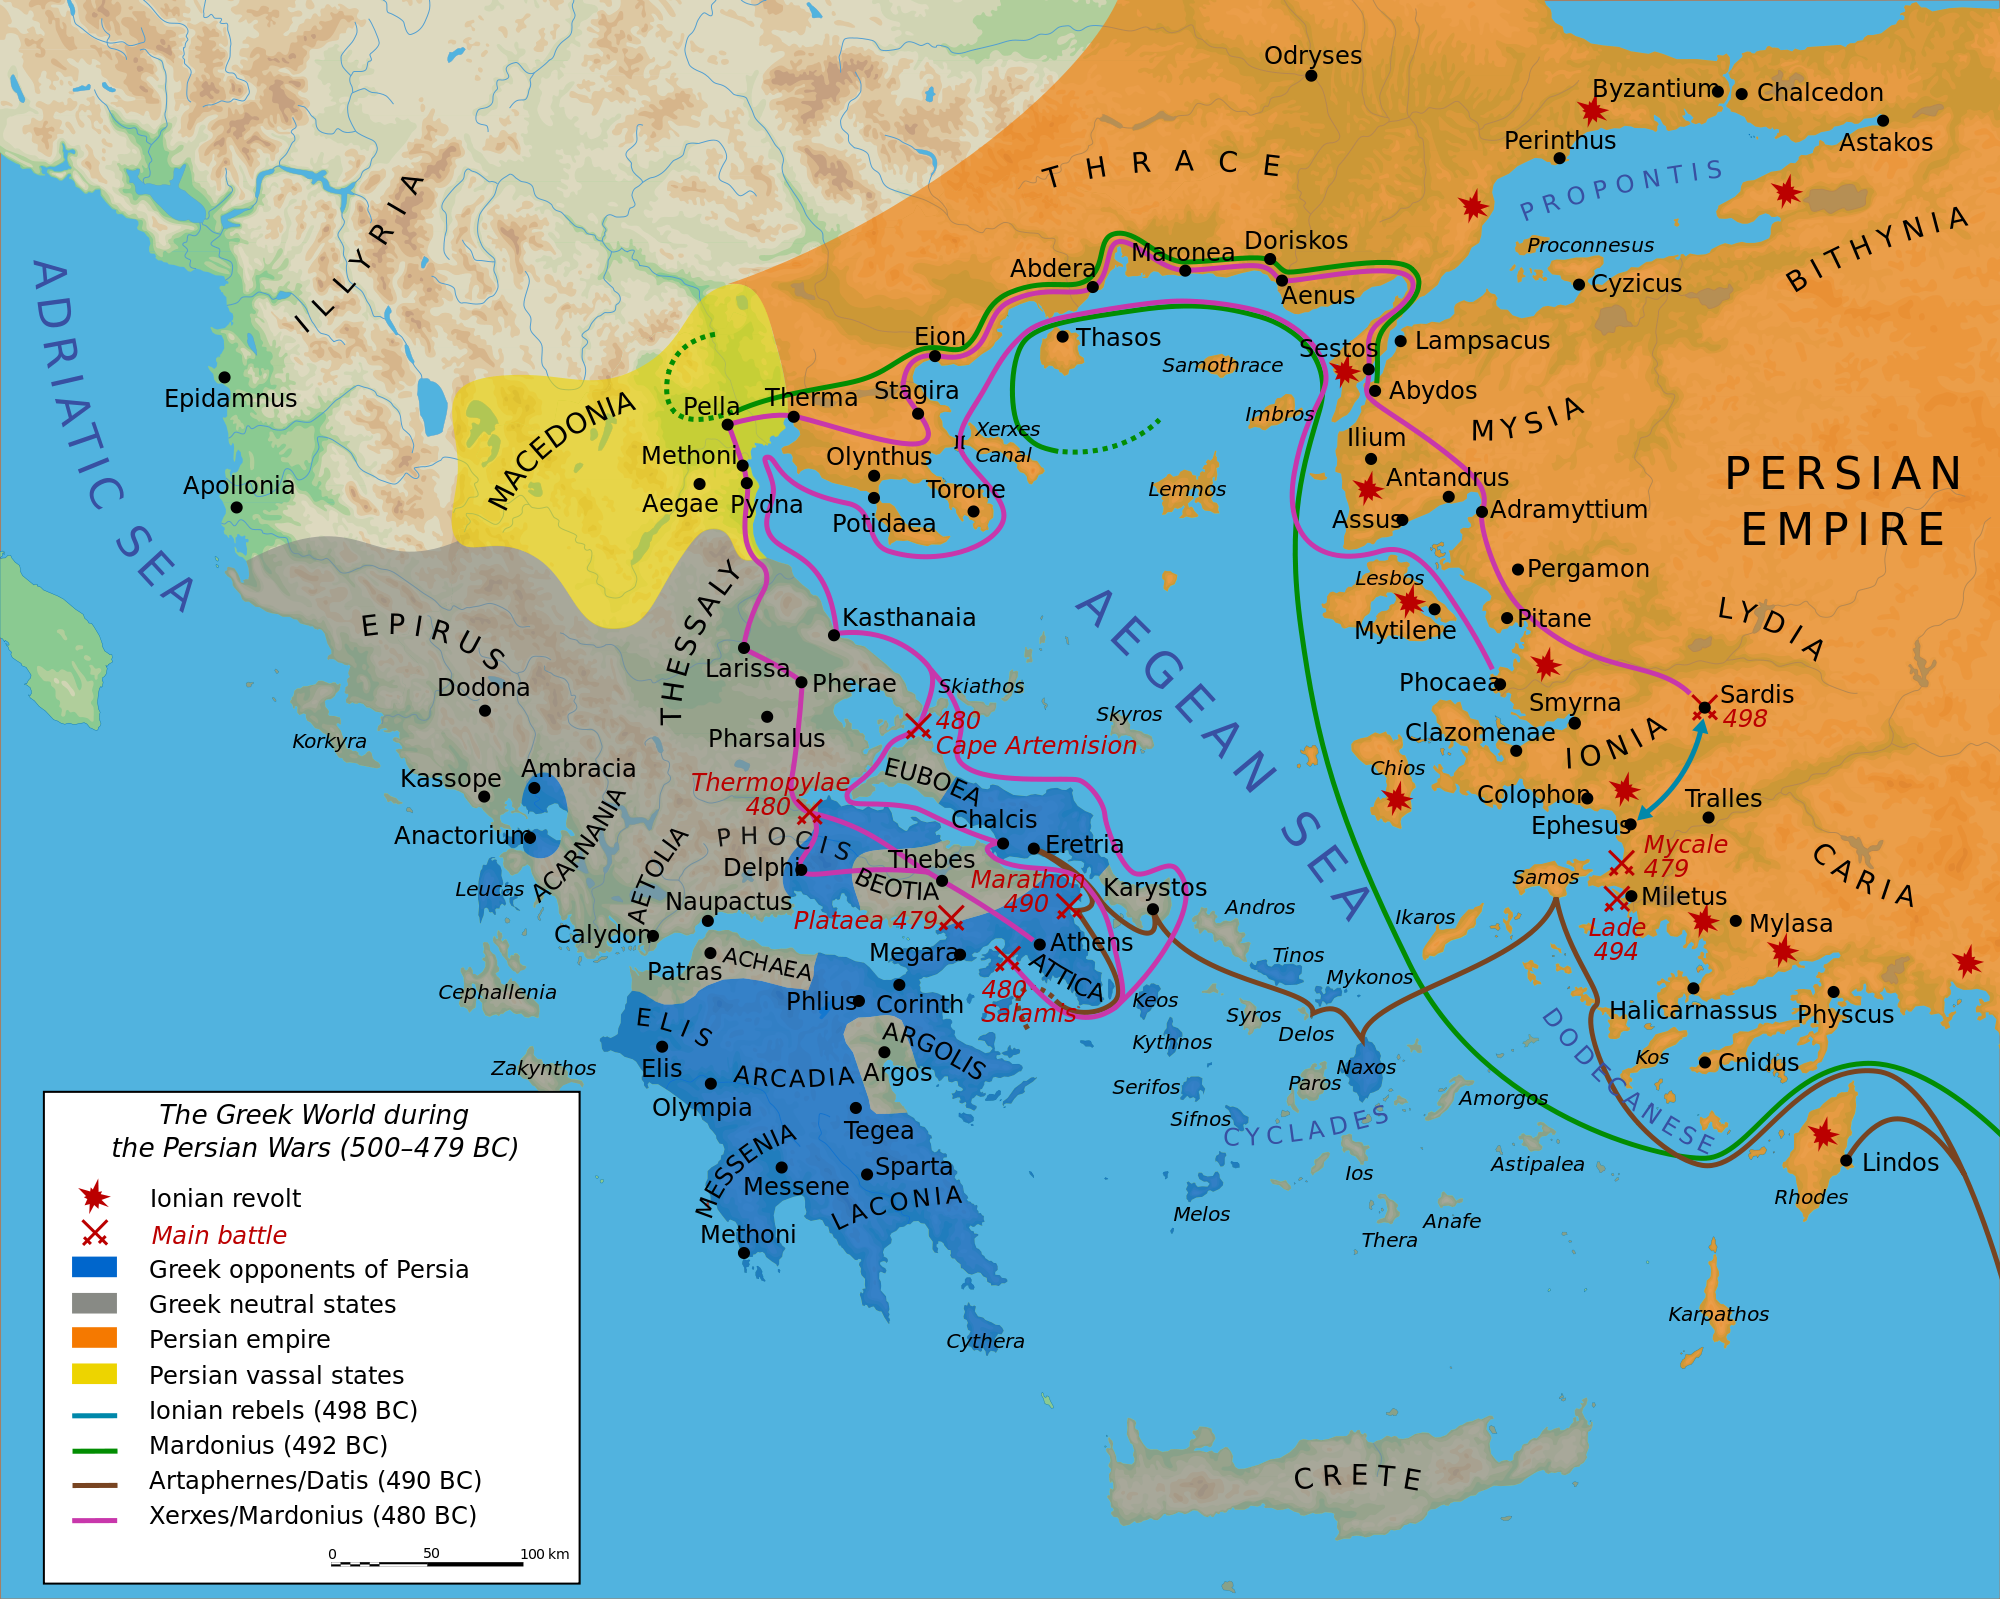 Map_Greco-Persian_Wars-wikipiedia